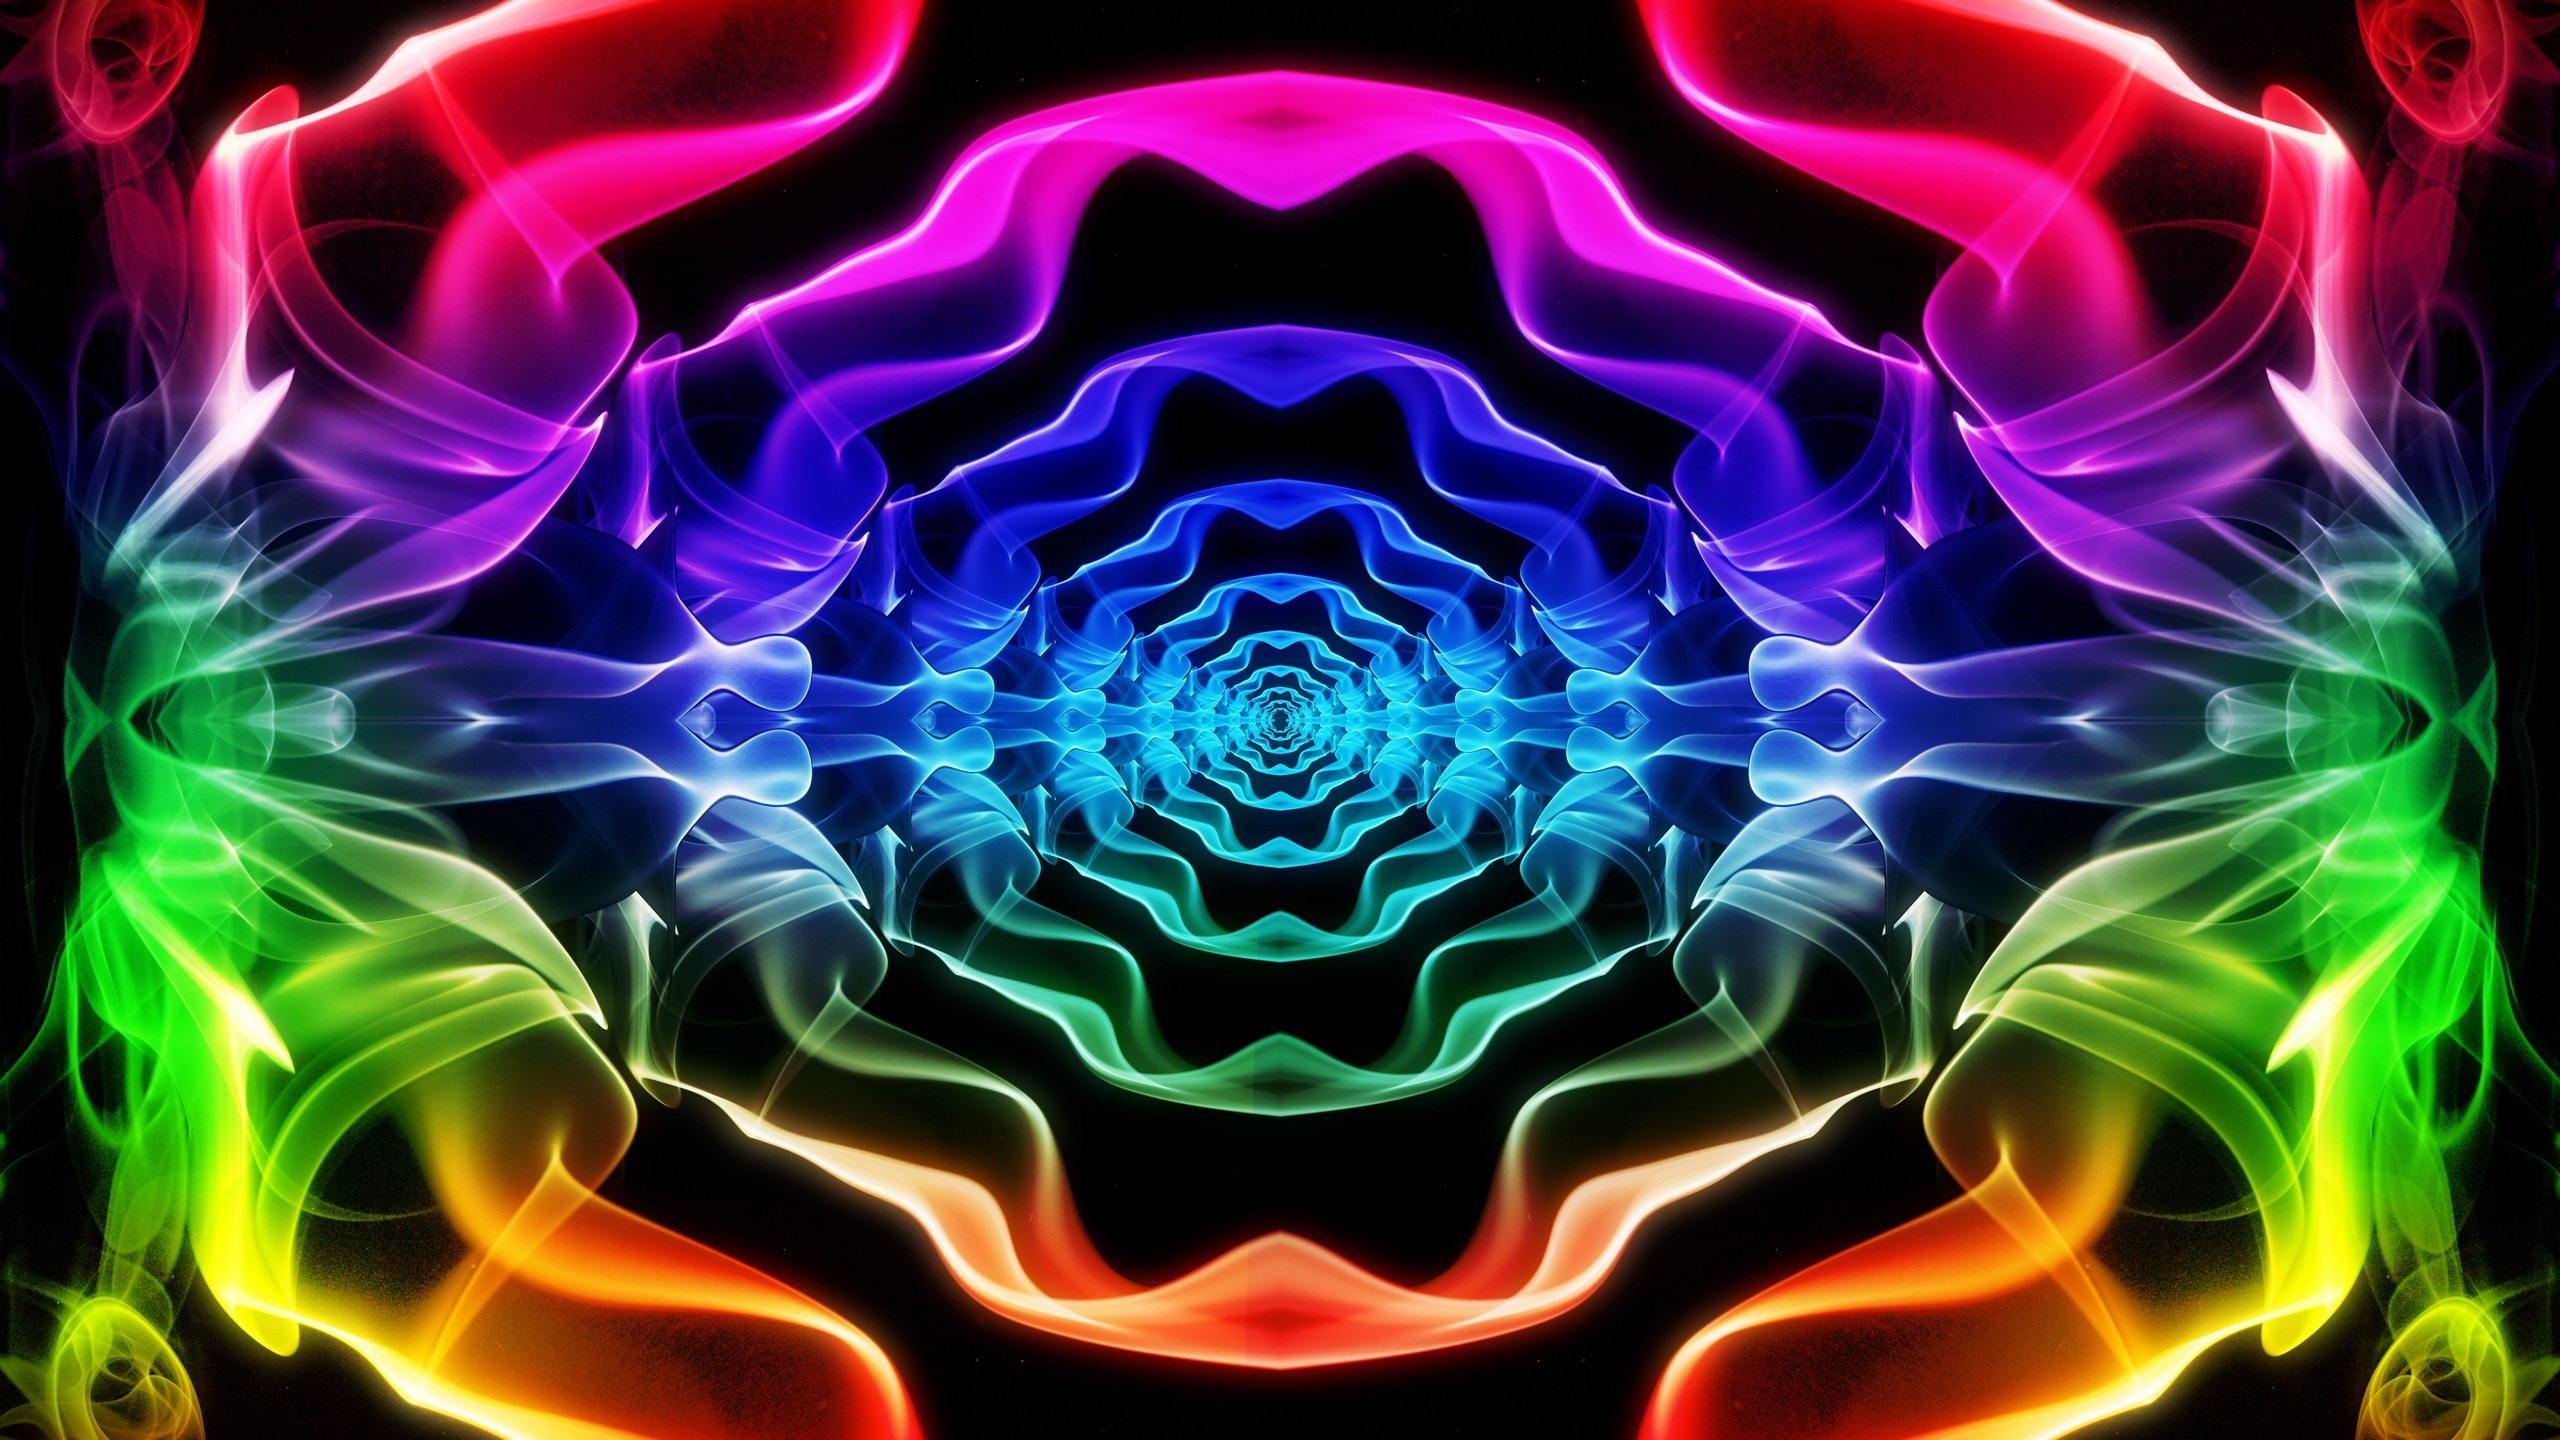 abstract smoke psychedelic color spectrum wallpaper background 2560x1440